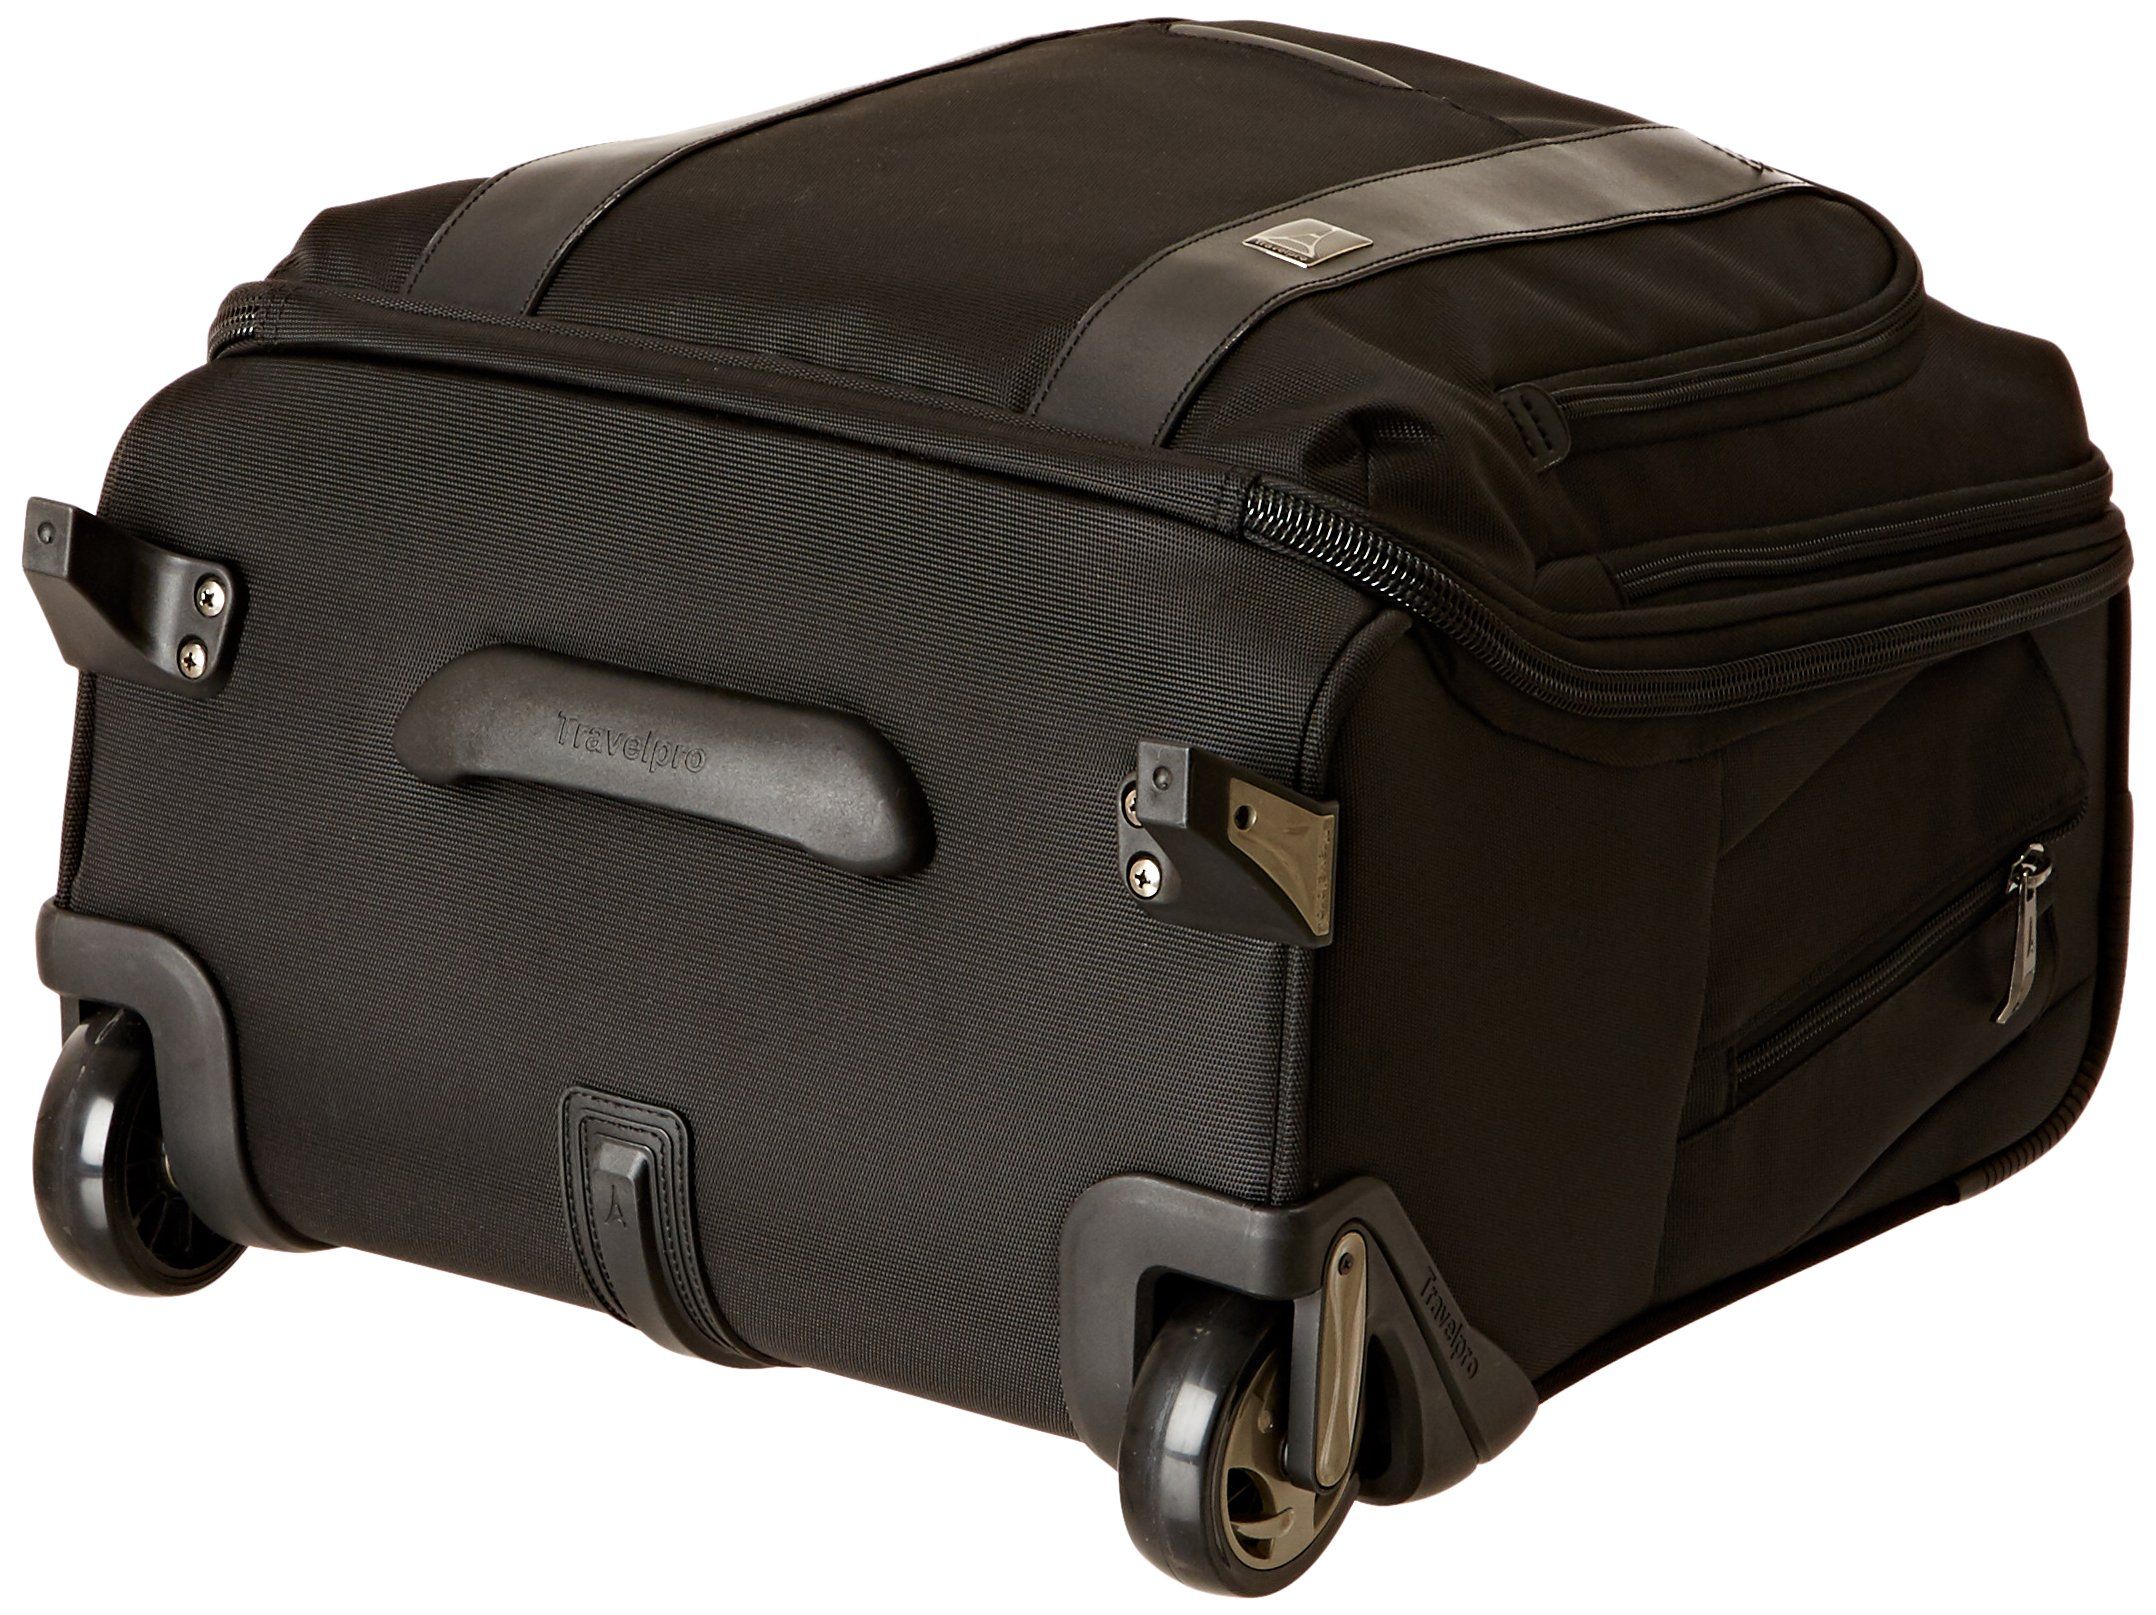 Travelpro Executive Choice Crew 16 Inch Rolling Business Brief, Black, One Size by Travelpro (Image #4)